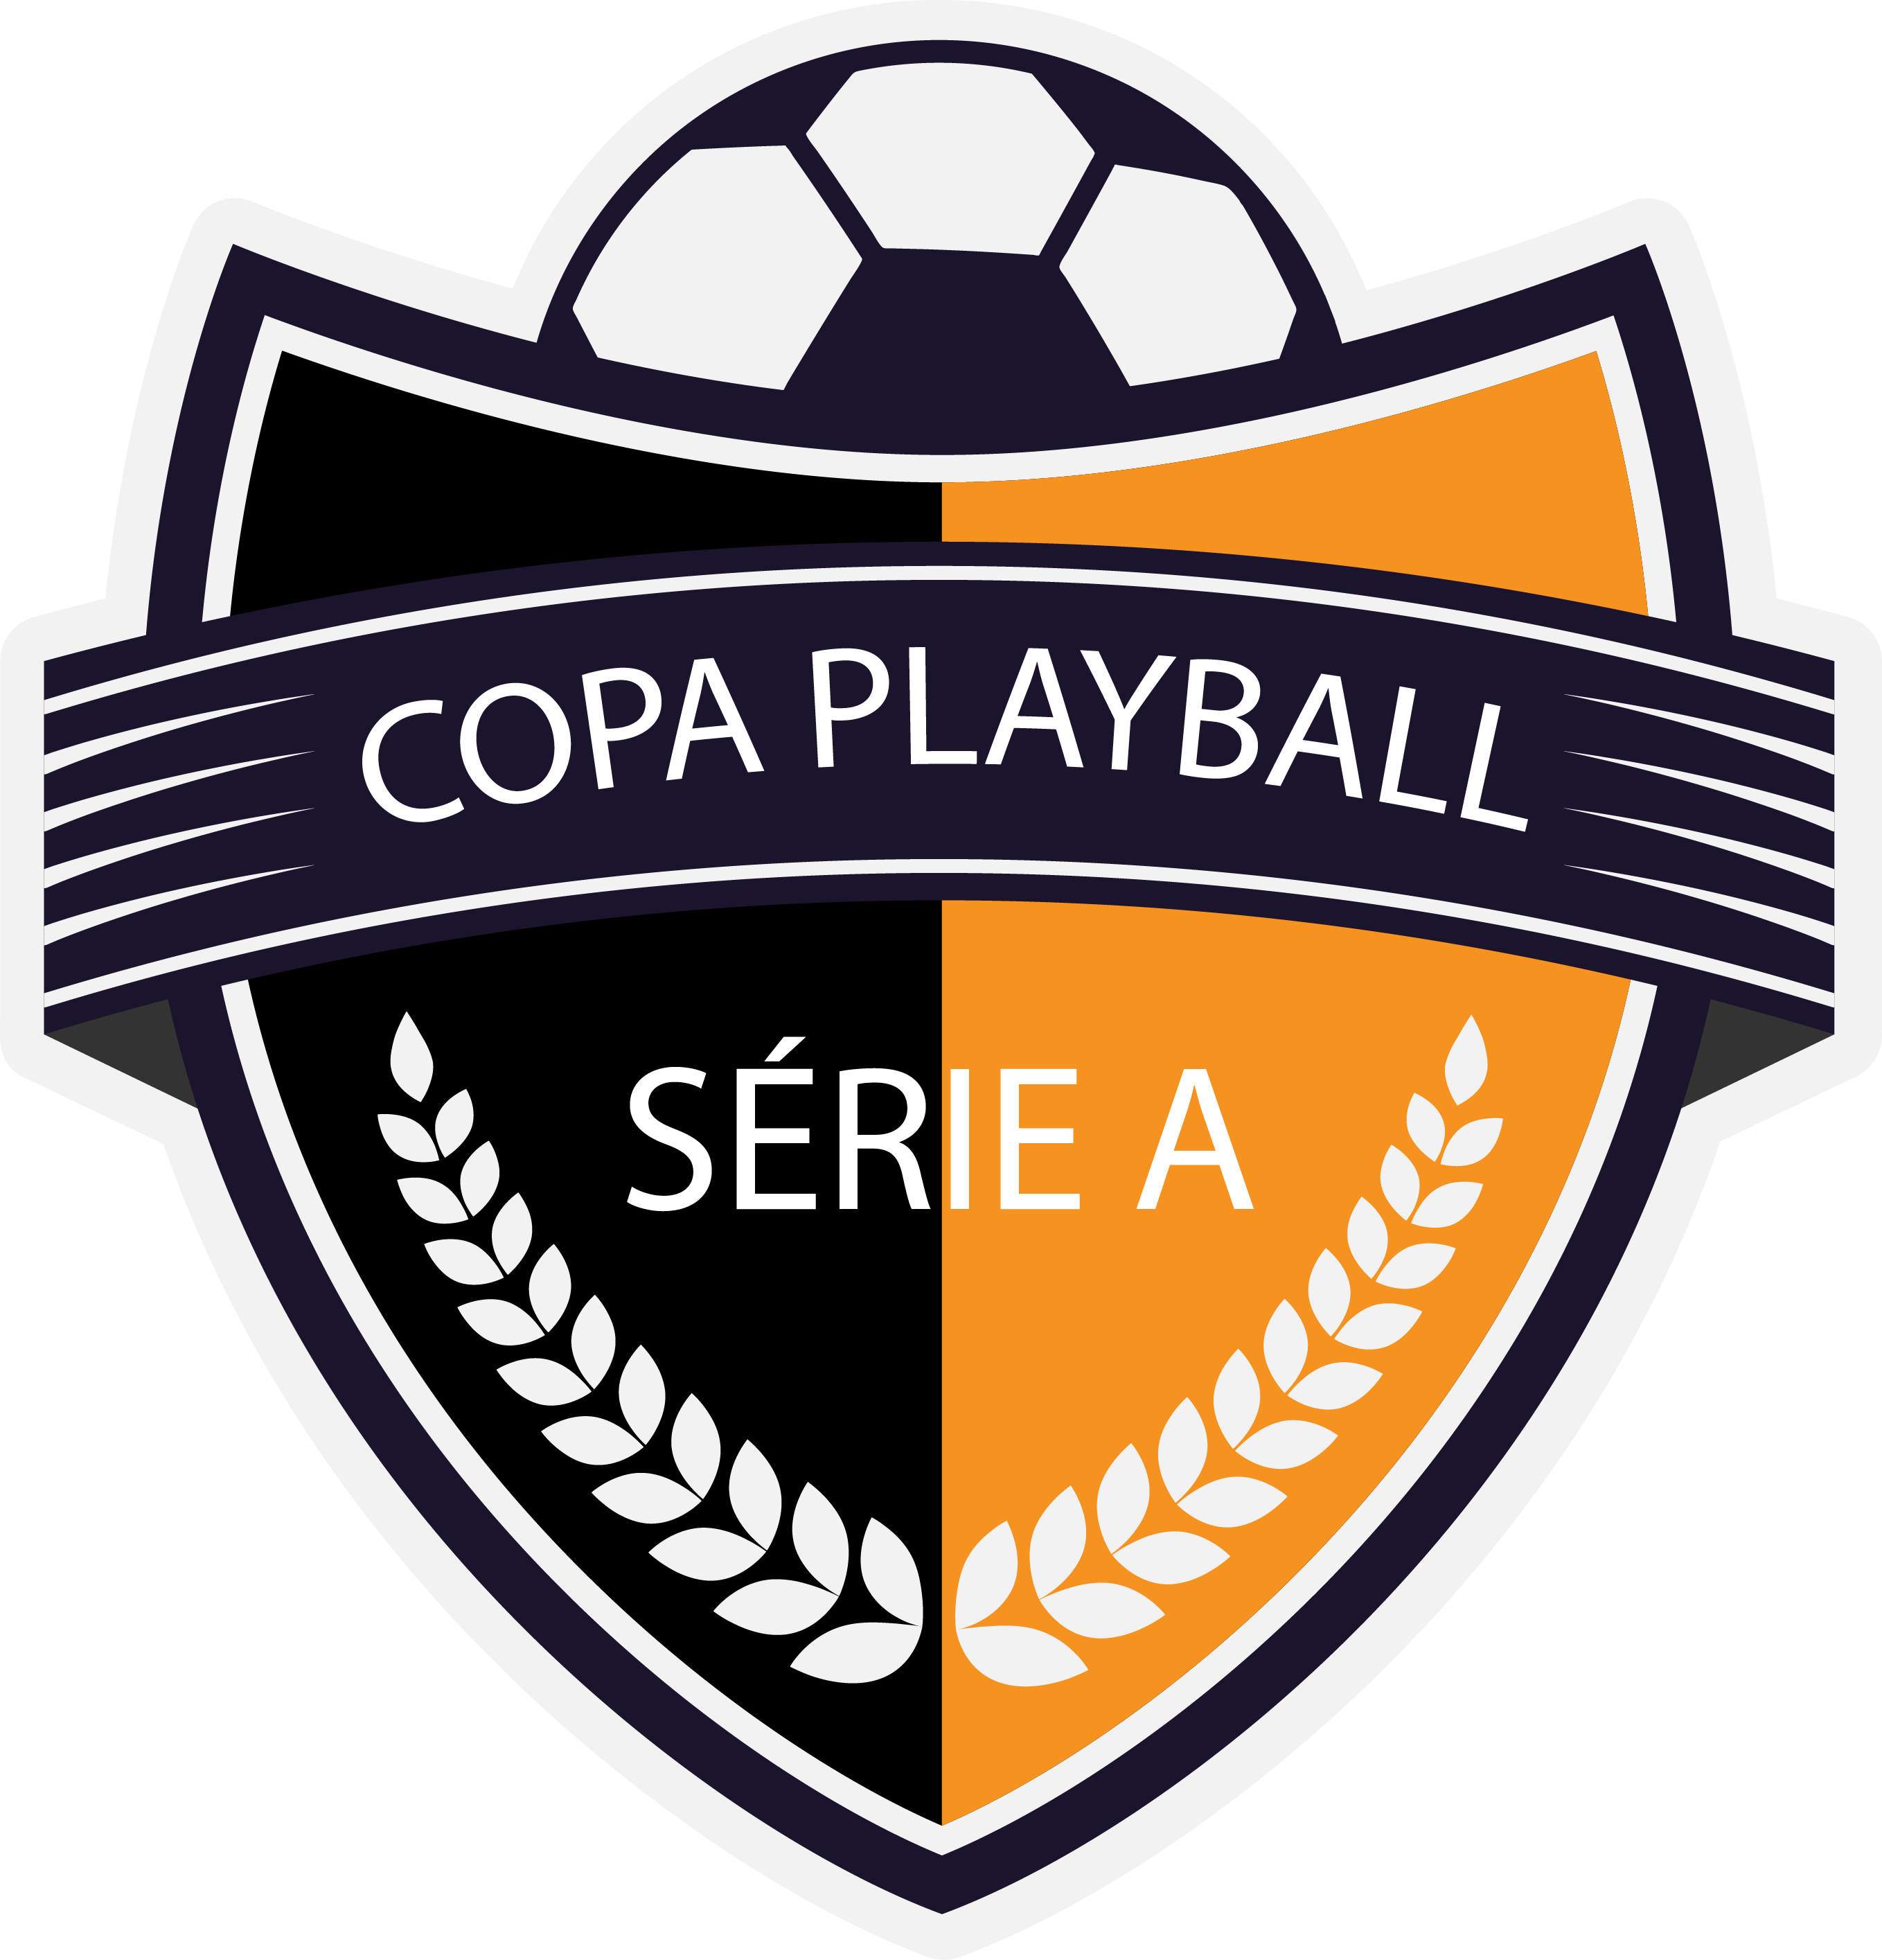 XI Copa Playball Serie A